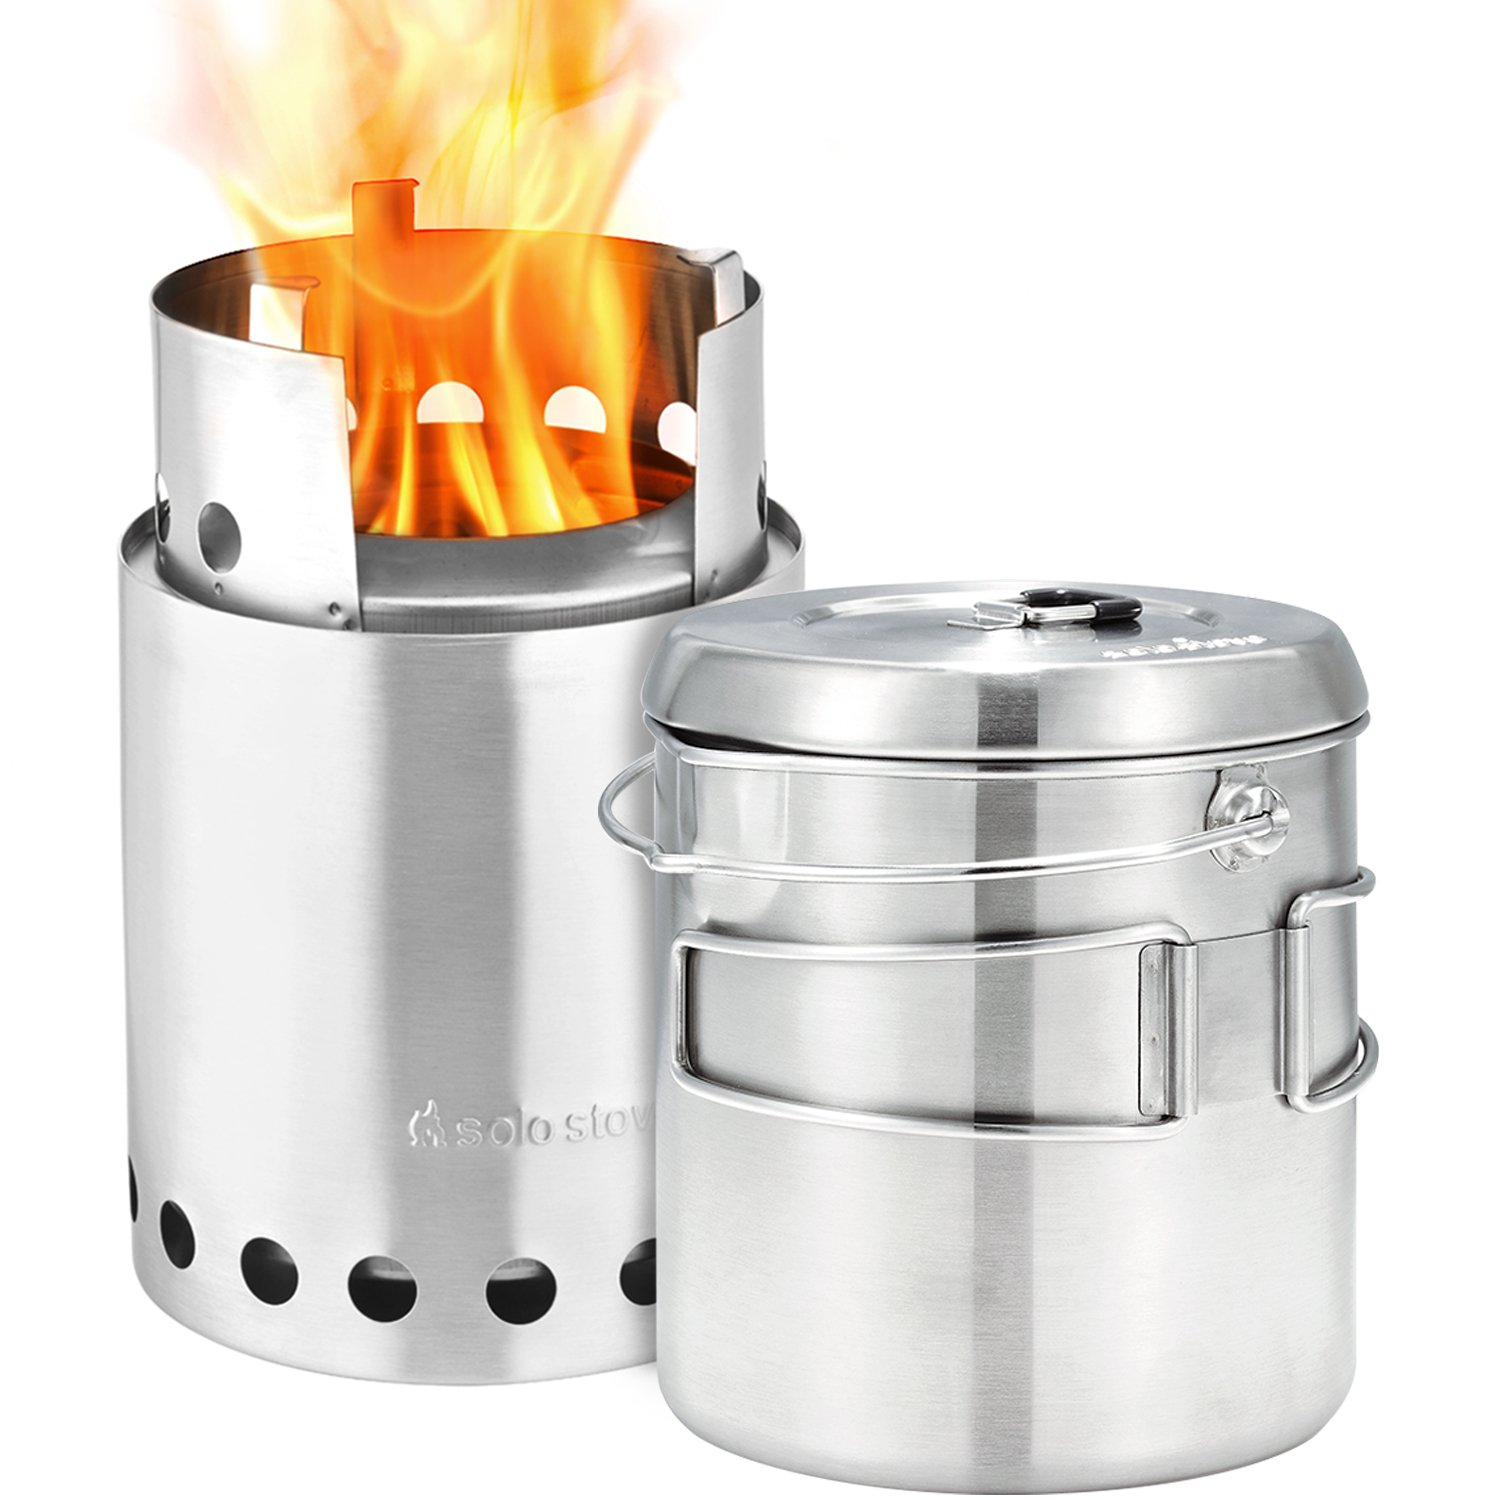 Solo Stove Titan & Solo Pot 1800 Camp Stove Combo: Woodburning Backpacking Stove Great for Camping and Survival by Solo Stove (Image #1)